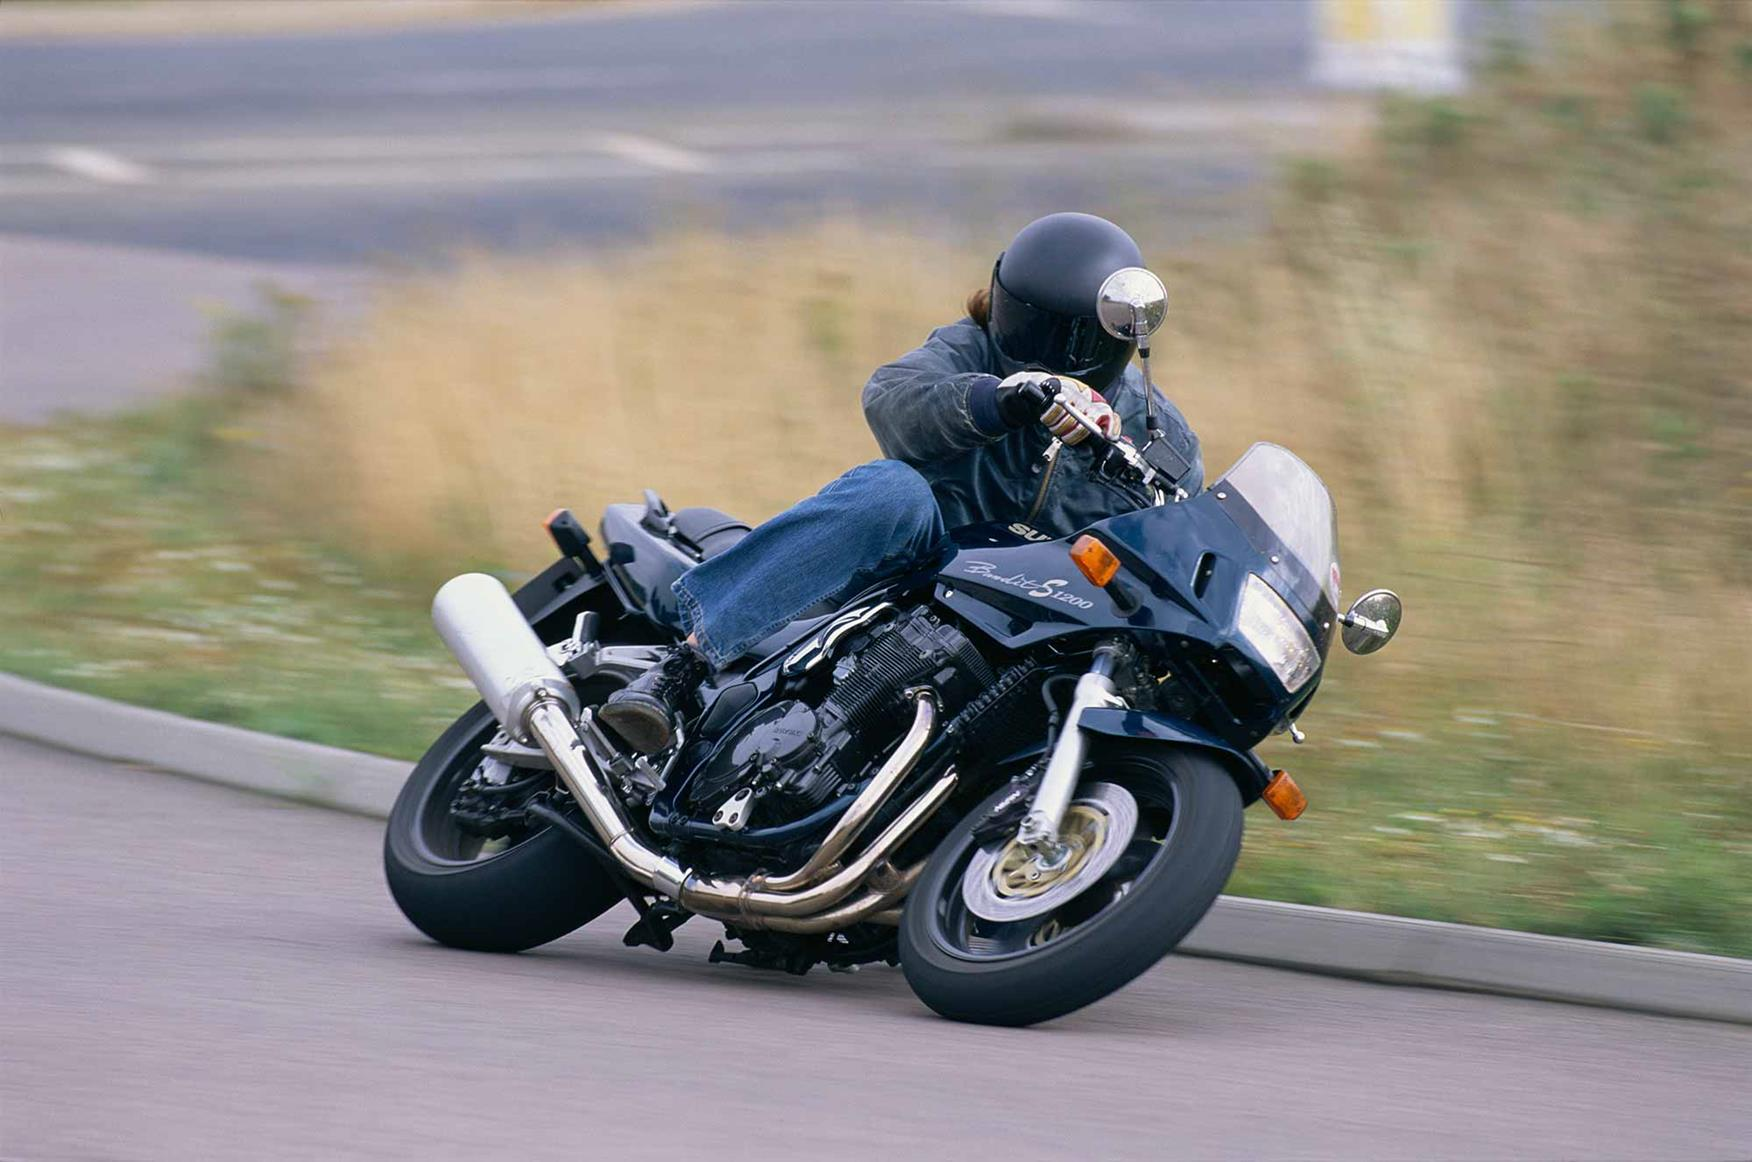 In action in 1996 on the original Bandit 1200